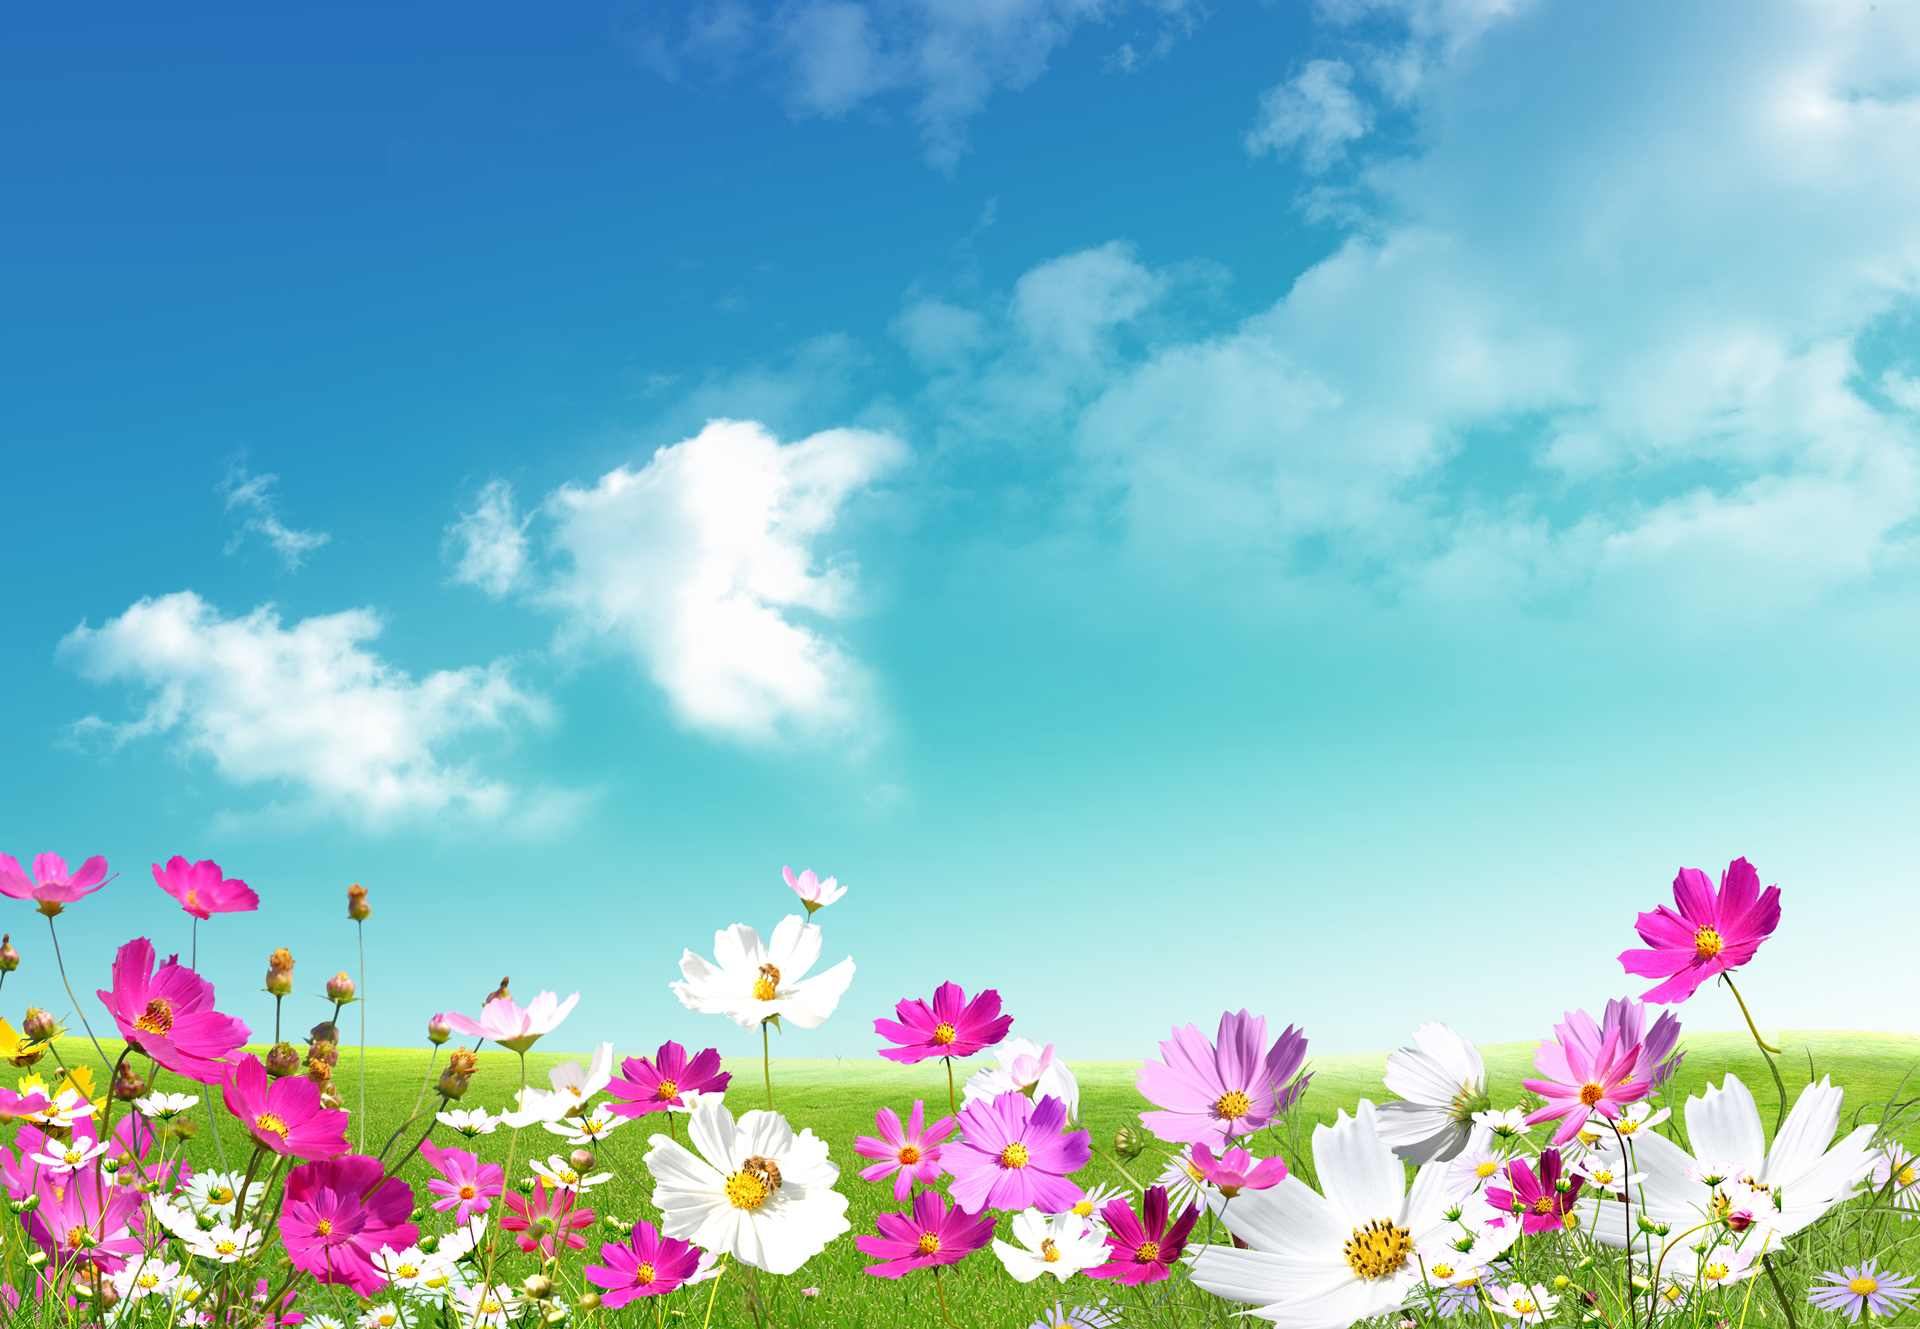 Spring 59 Wallpapers Desktop Wallpapers HD Wallpapers 1920x1329